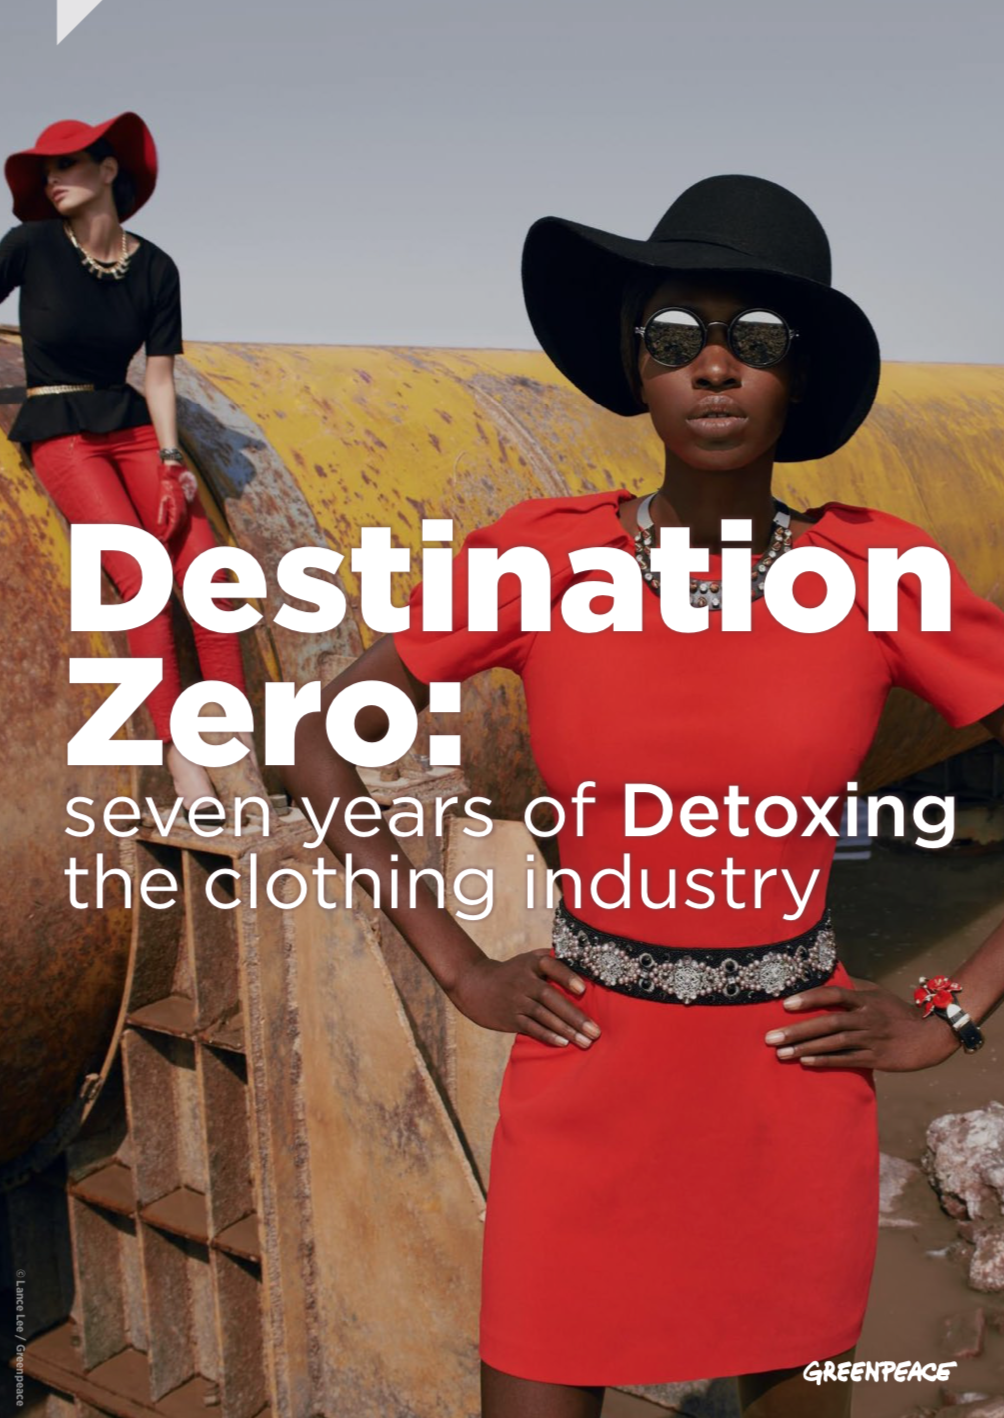 Destination Zero Greenpeace Detox